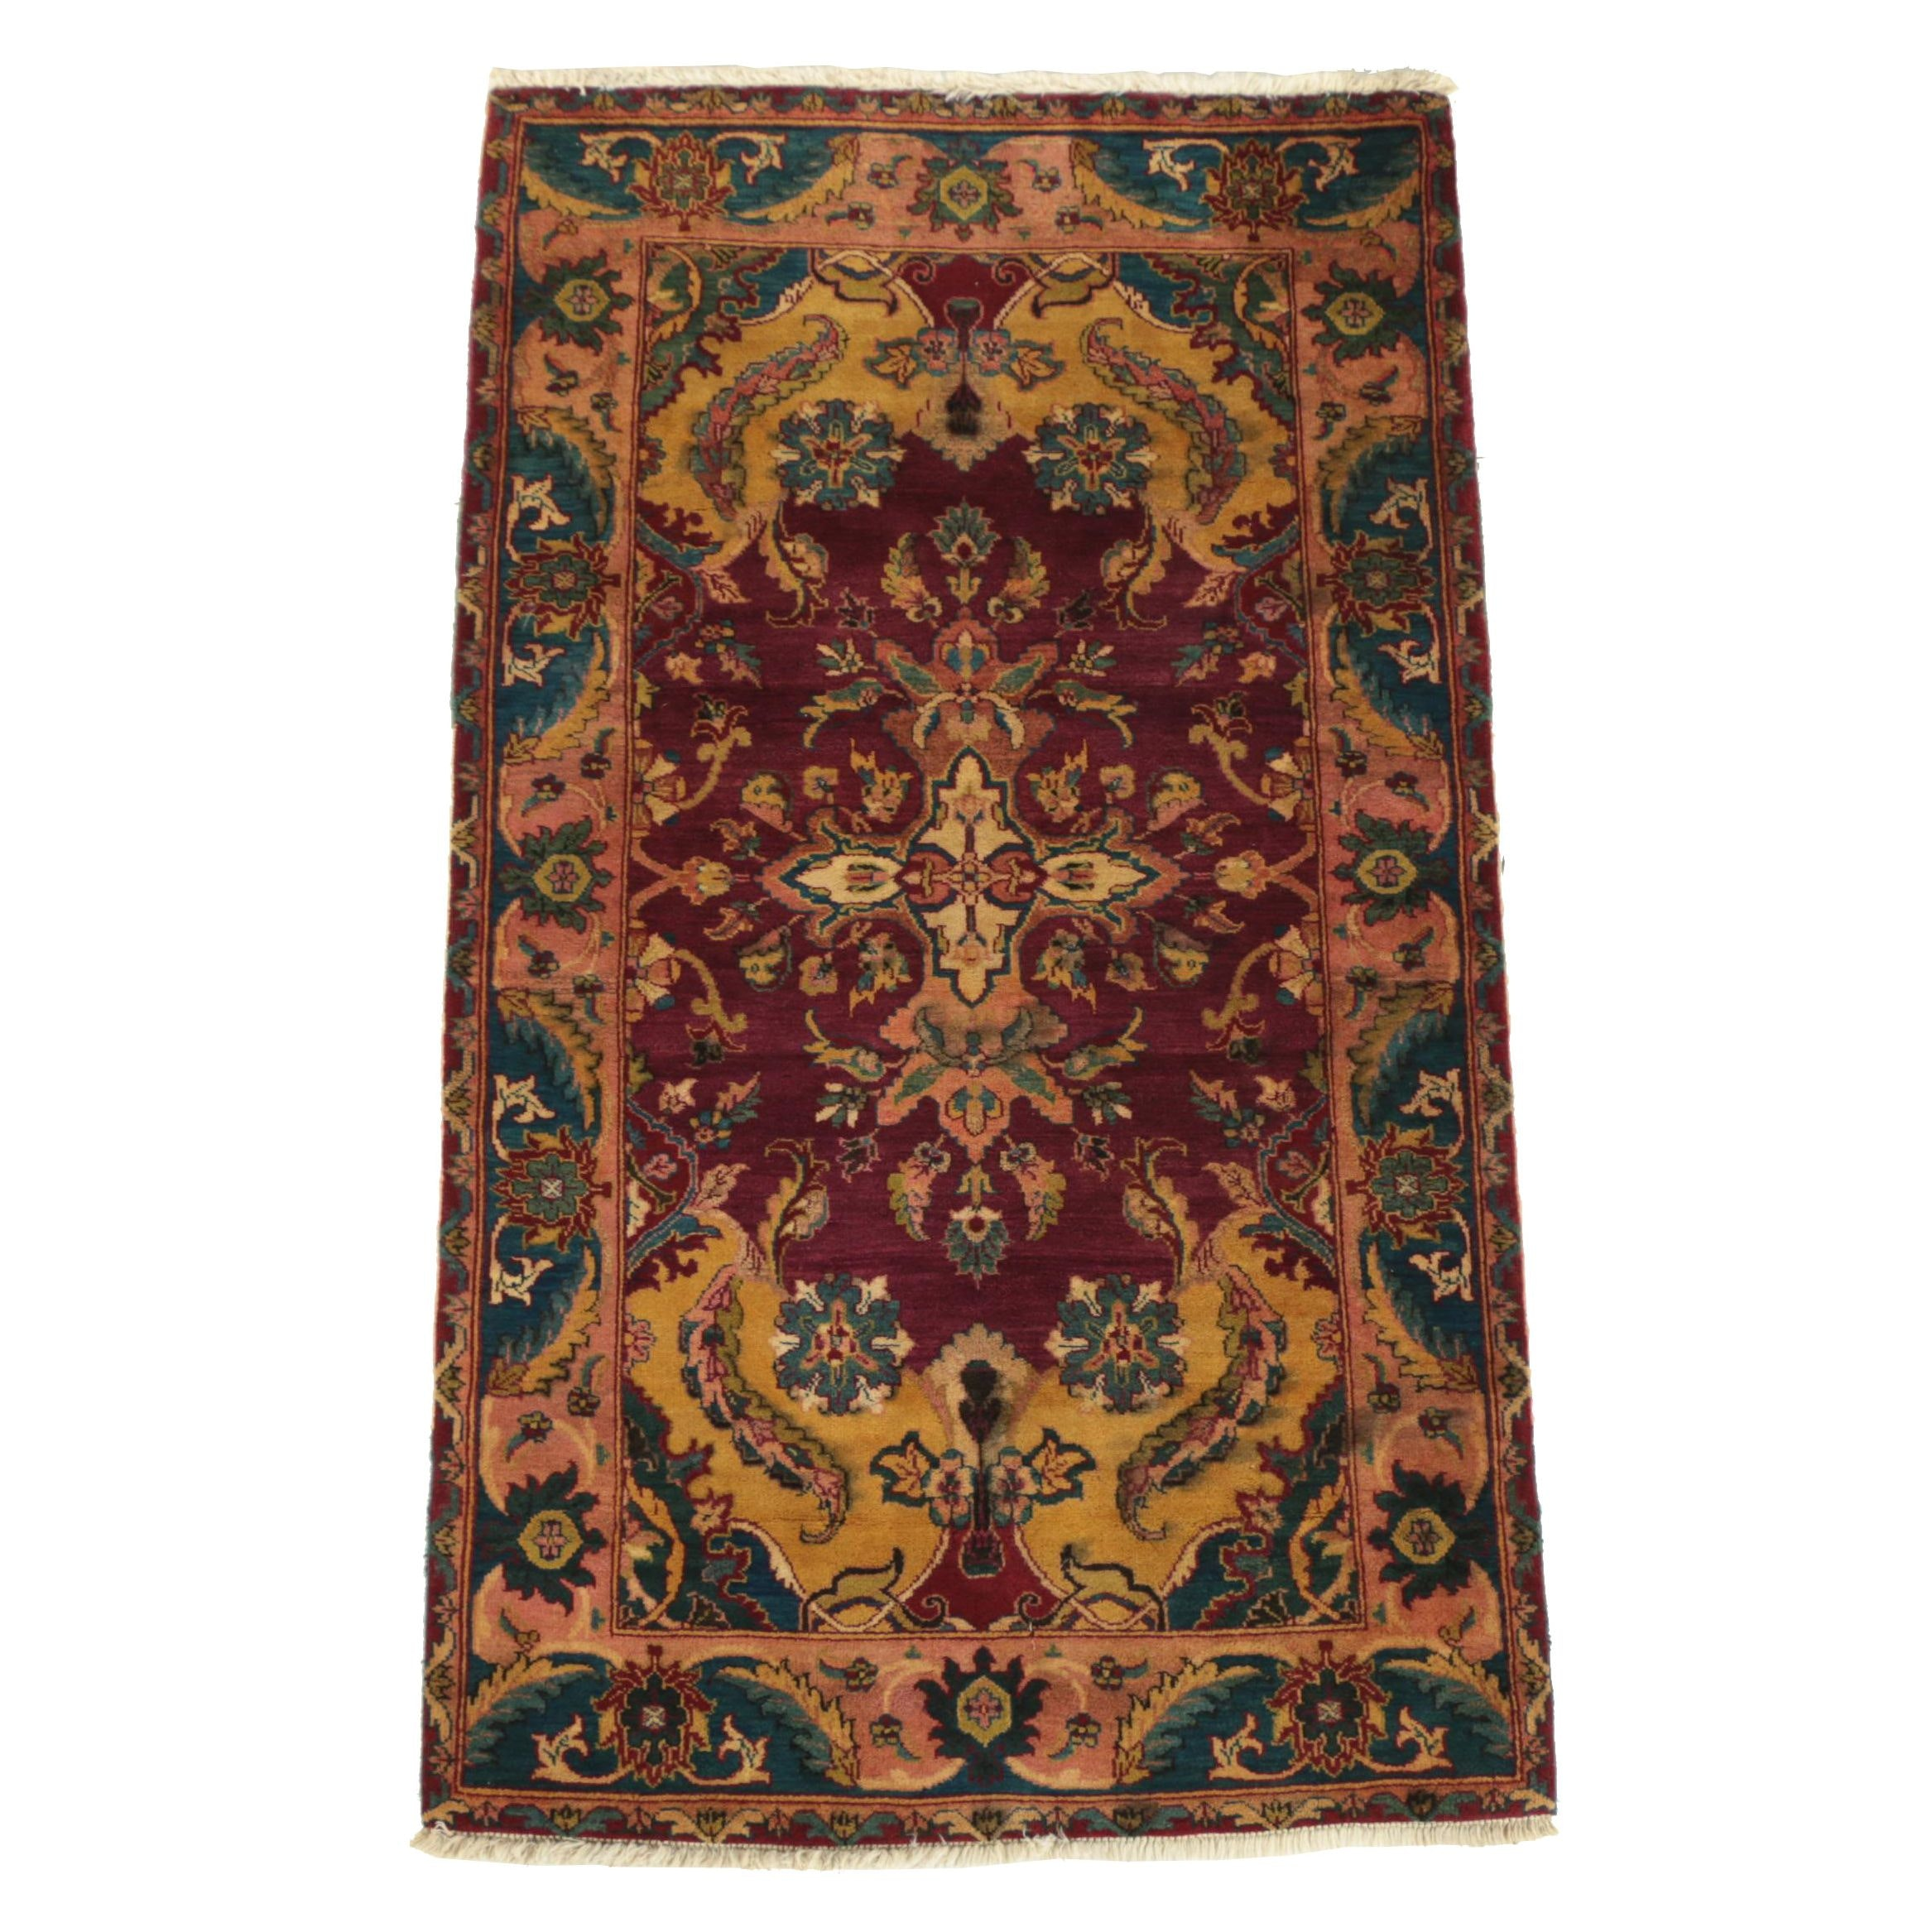 Hand-Knotted Indian Wool Rug for Noble House Collection